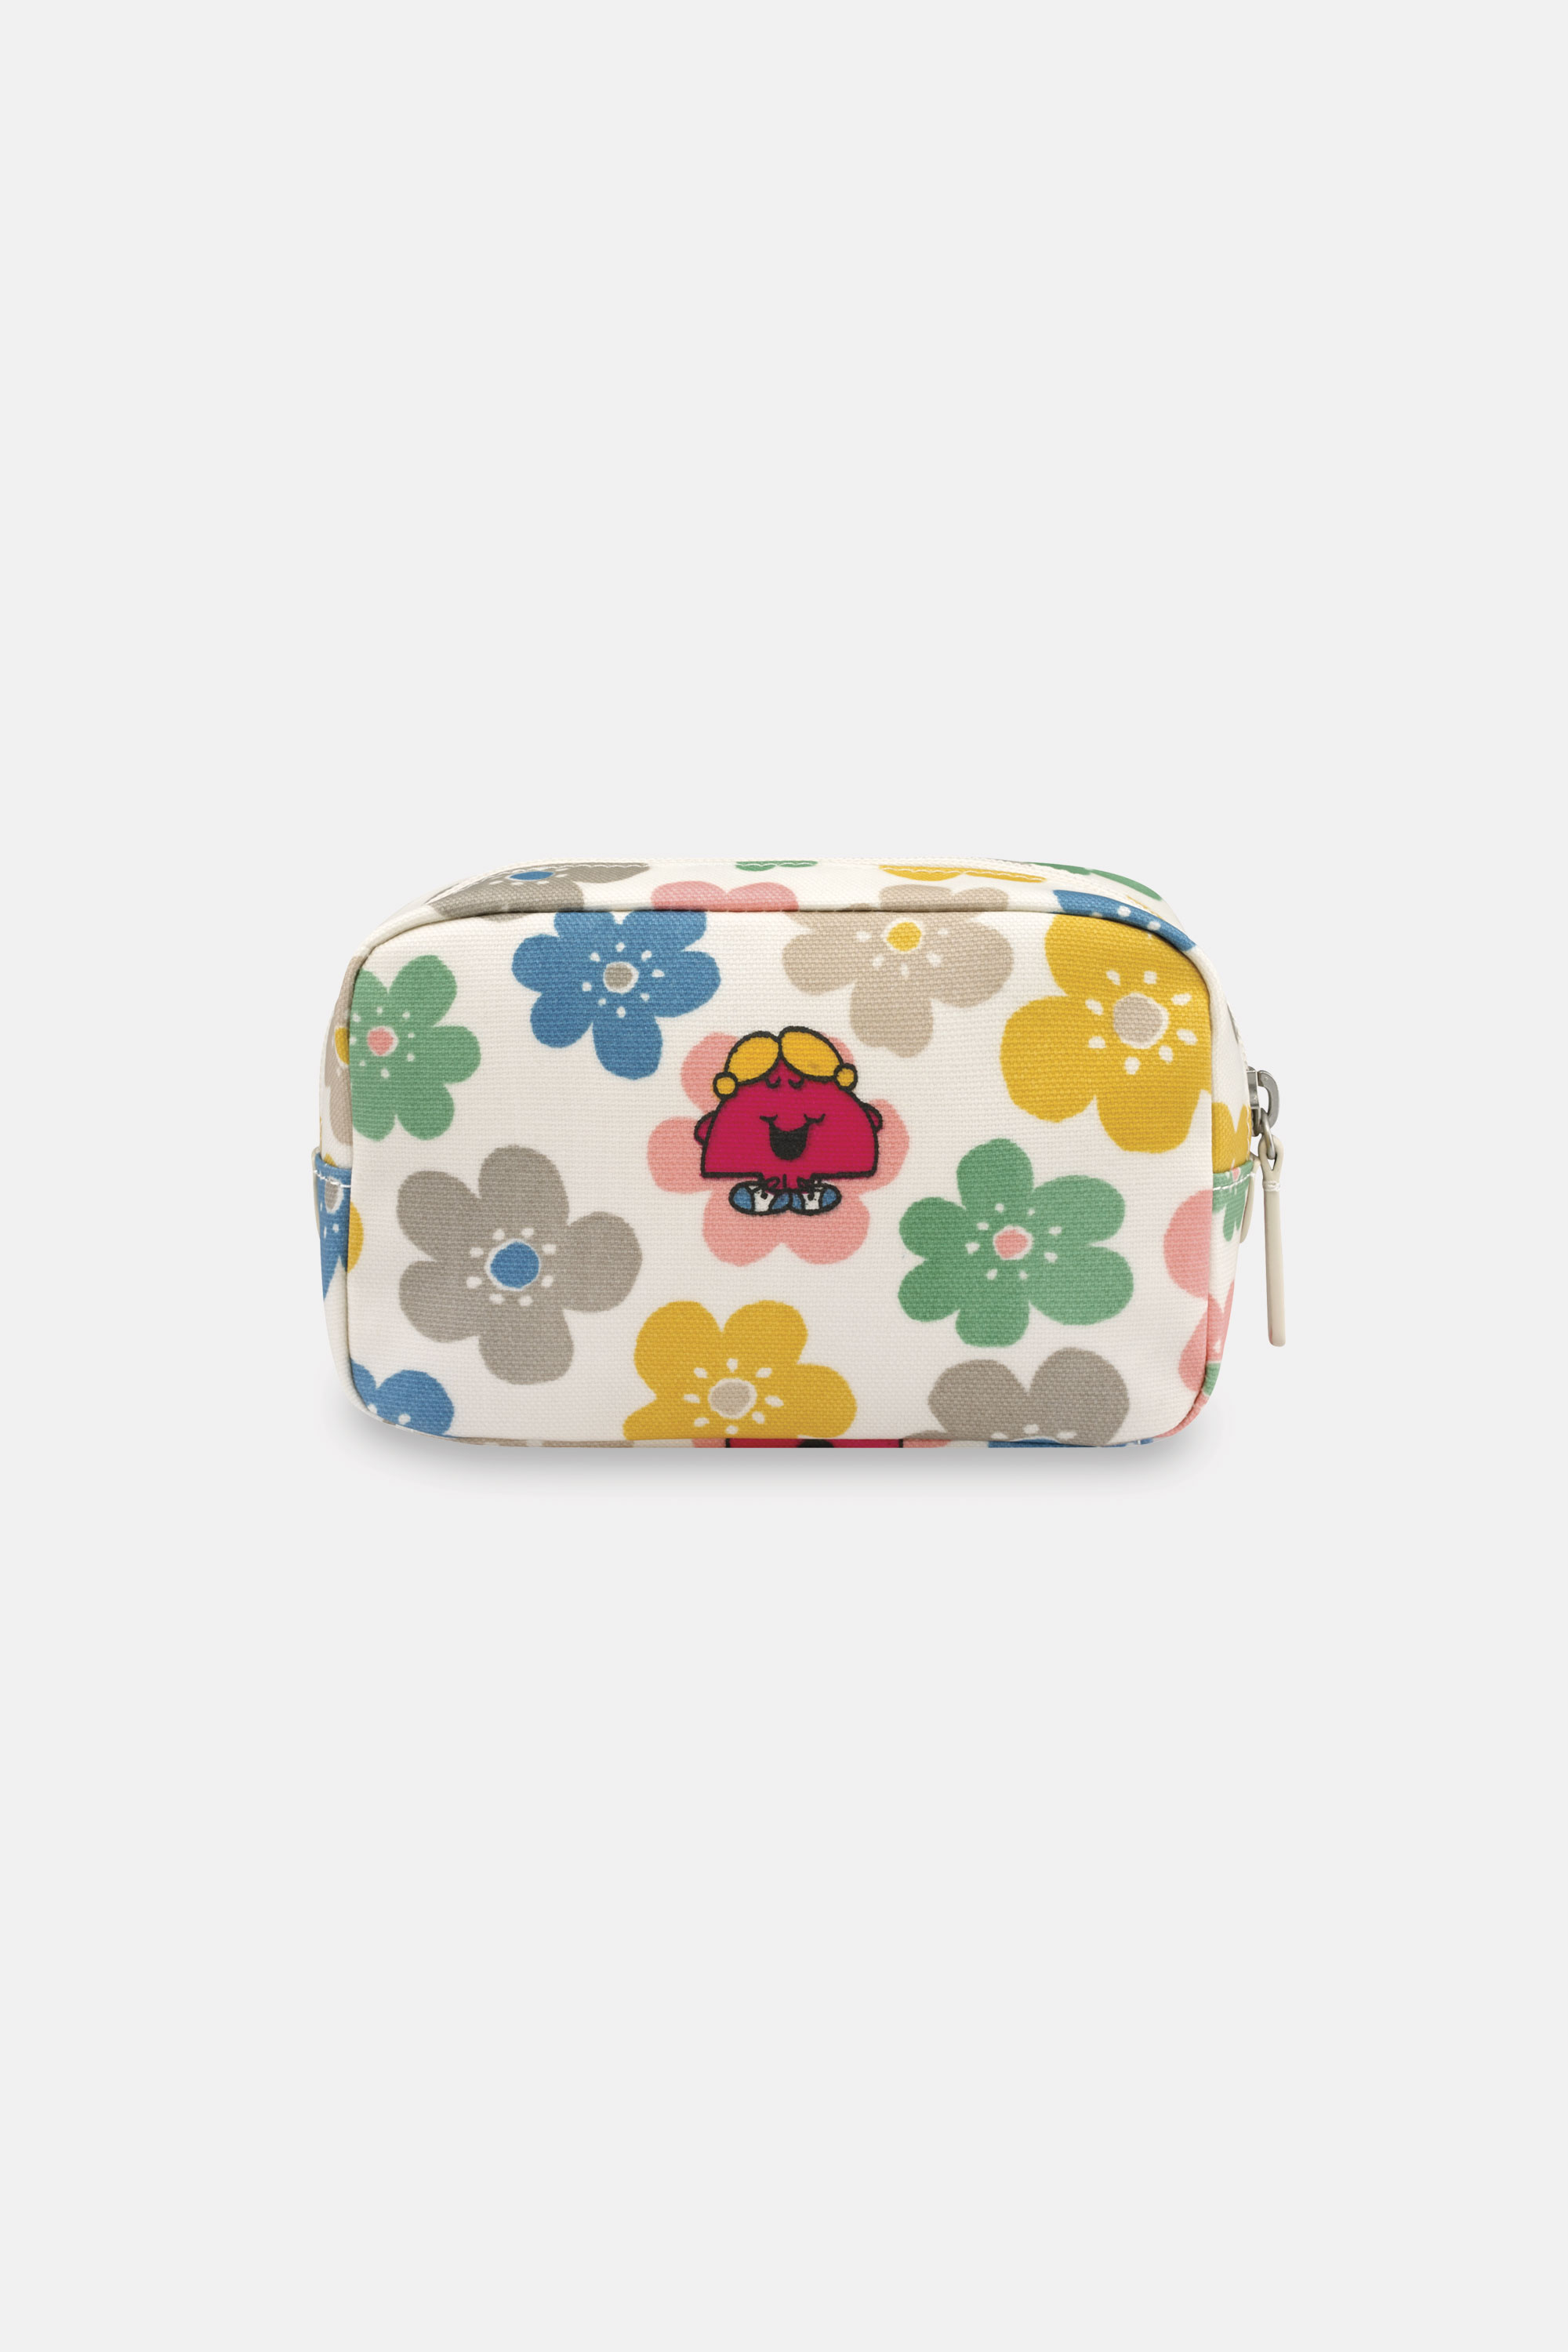 Cath Kidston Mr Men Floral Box Cosmetic Bag in Oyster Shell, 100% PVC Shiny Coated Cotton